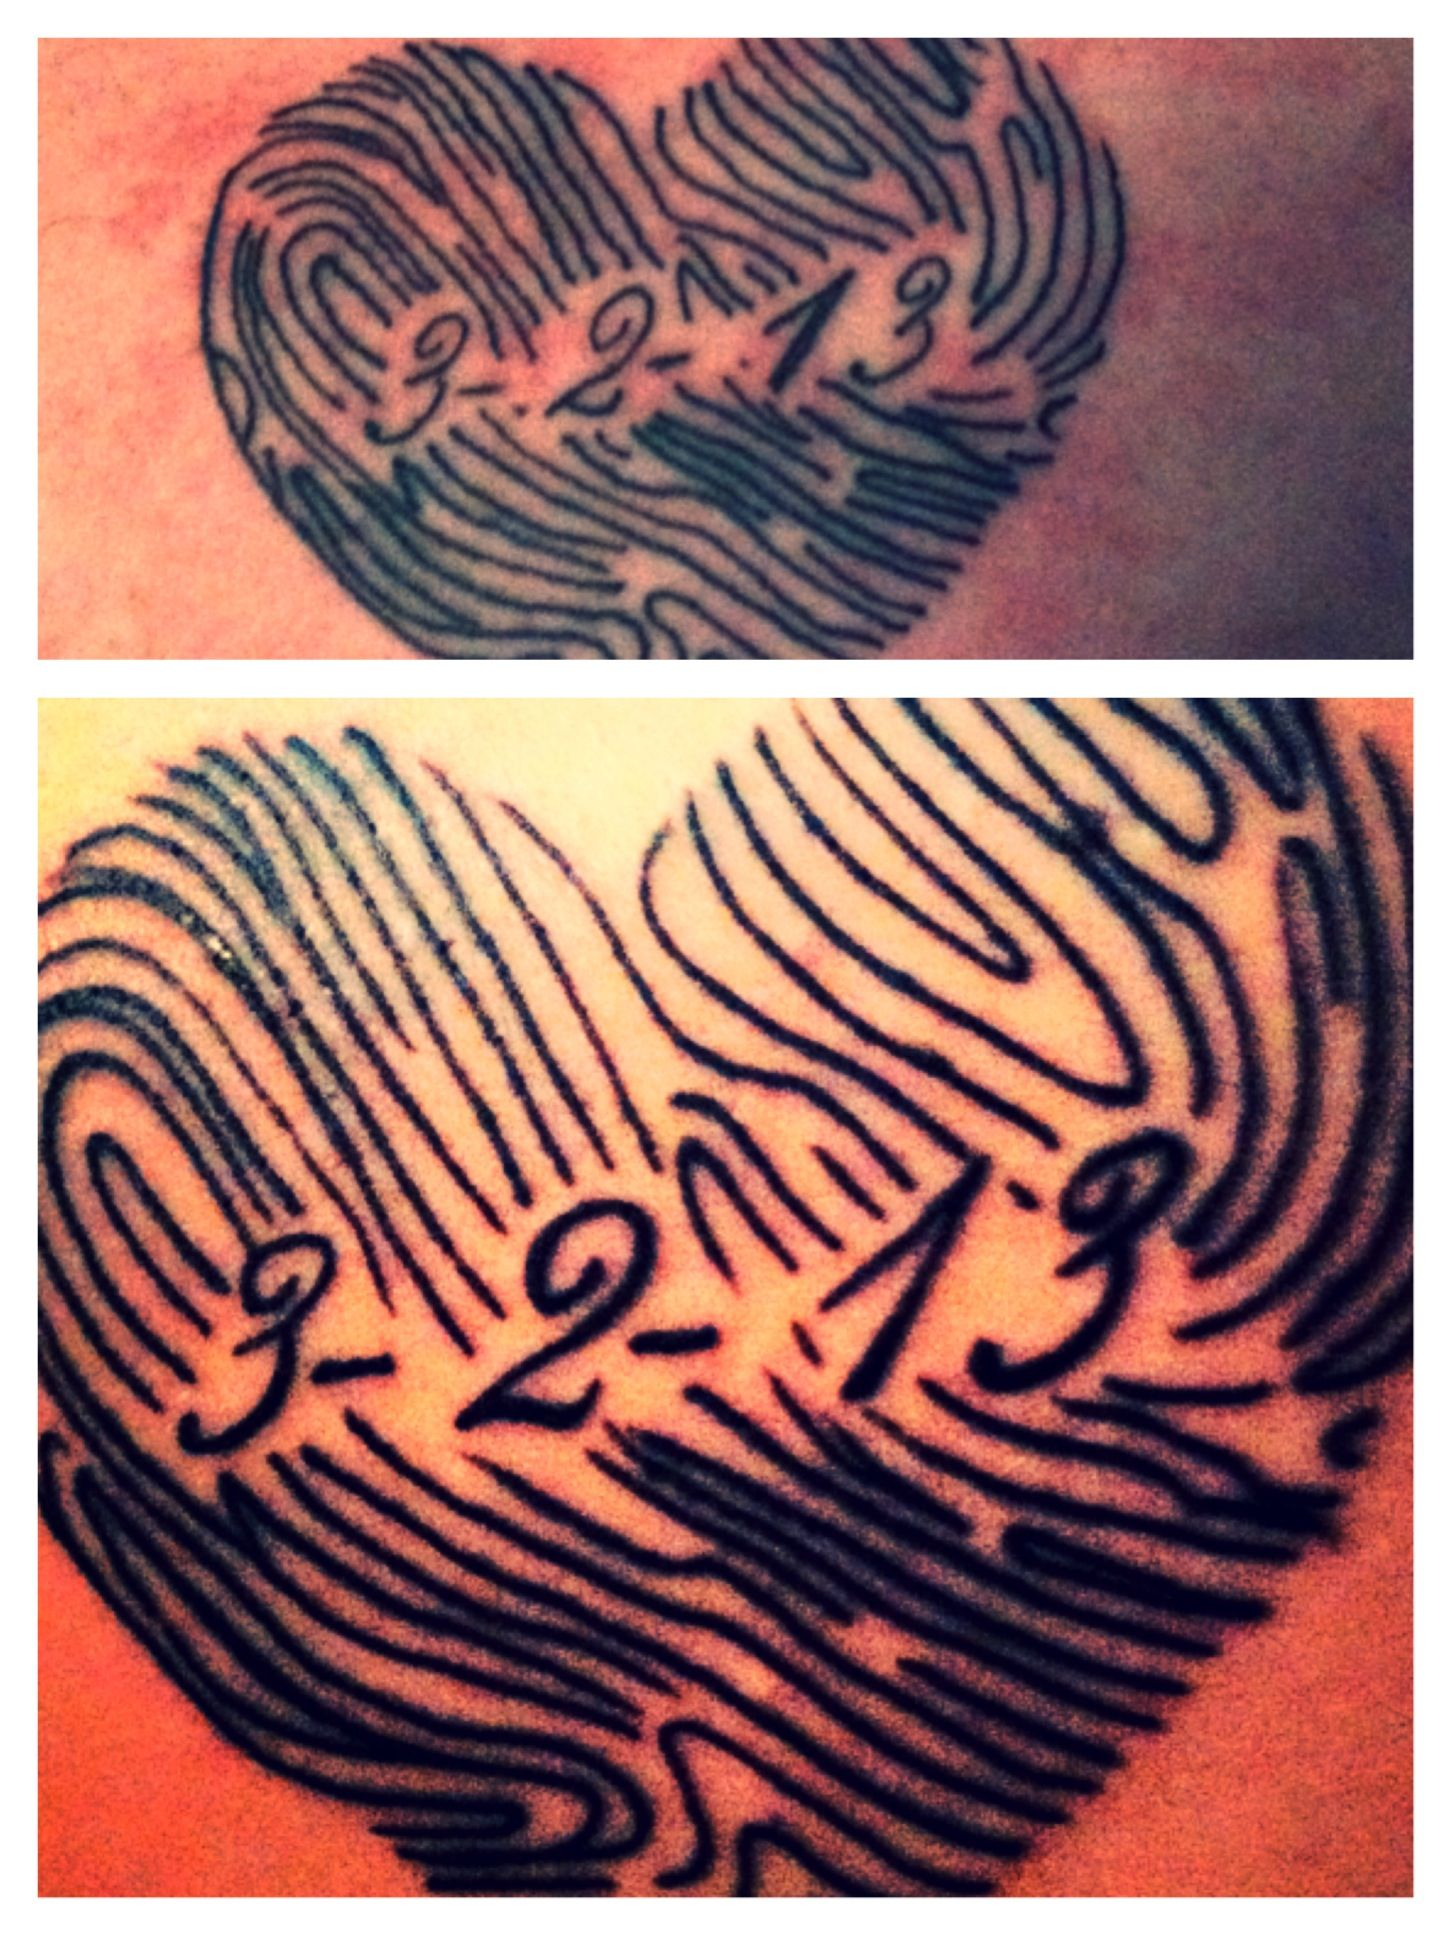 Mine And The Hubby S Matching Tattoo Our Thumbprints In The Shape